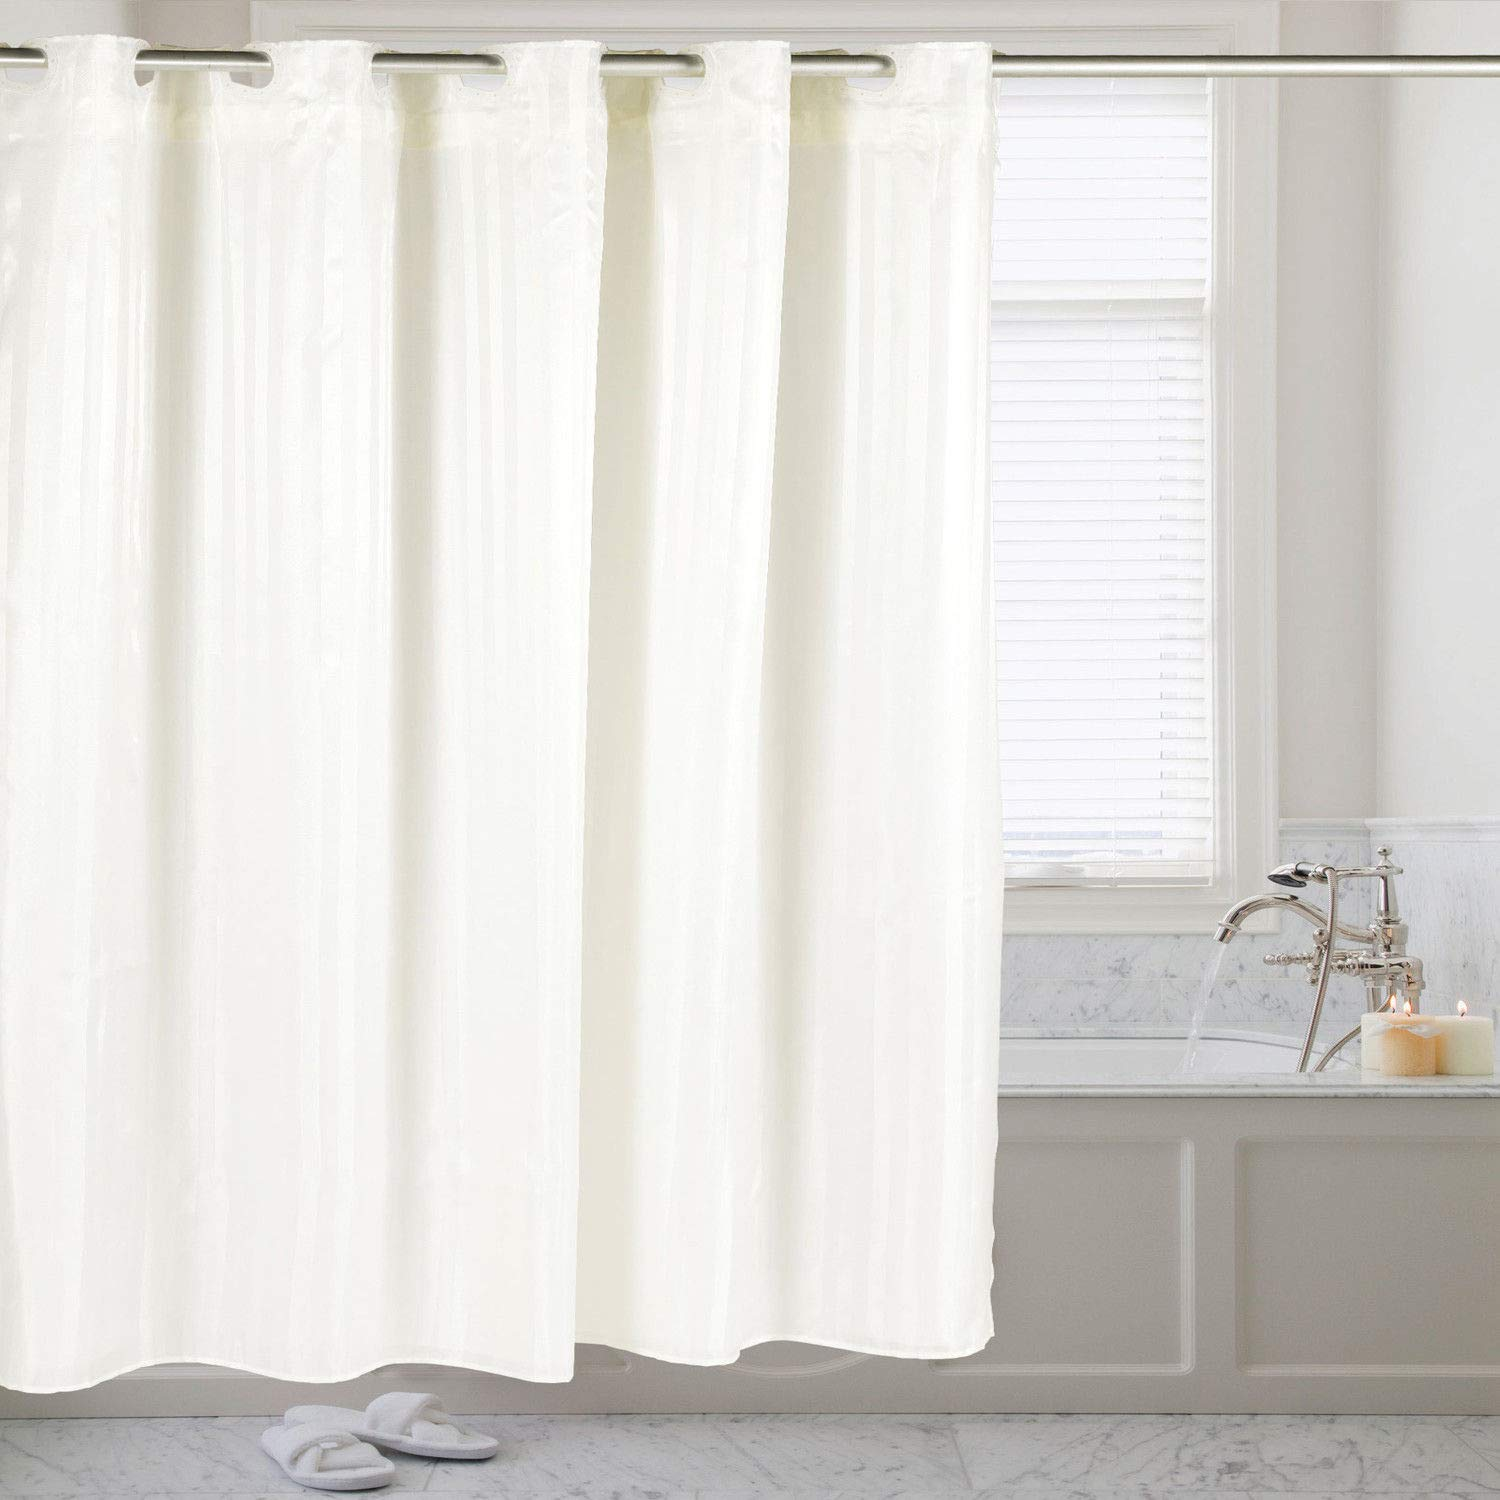 DN_LIN New Hookless Fabric Dobby Stripe Shower Curtain with Snap Off Liner 70''x75'' - White.